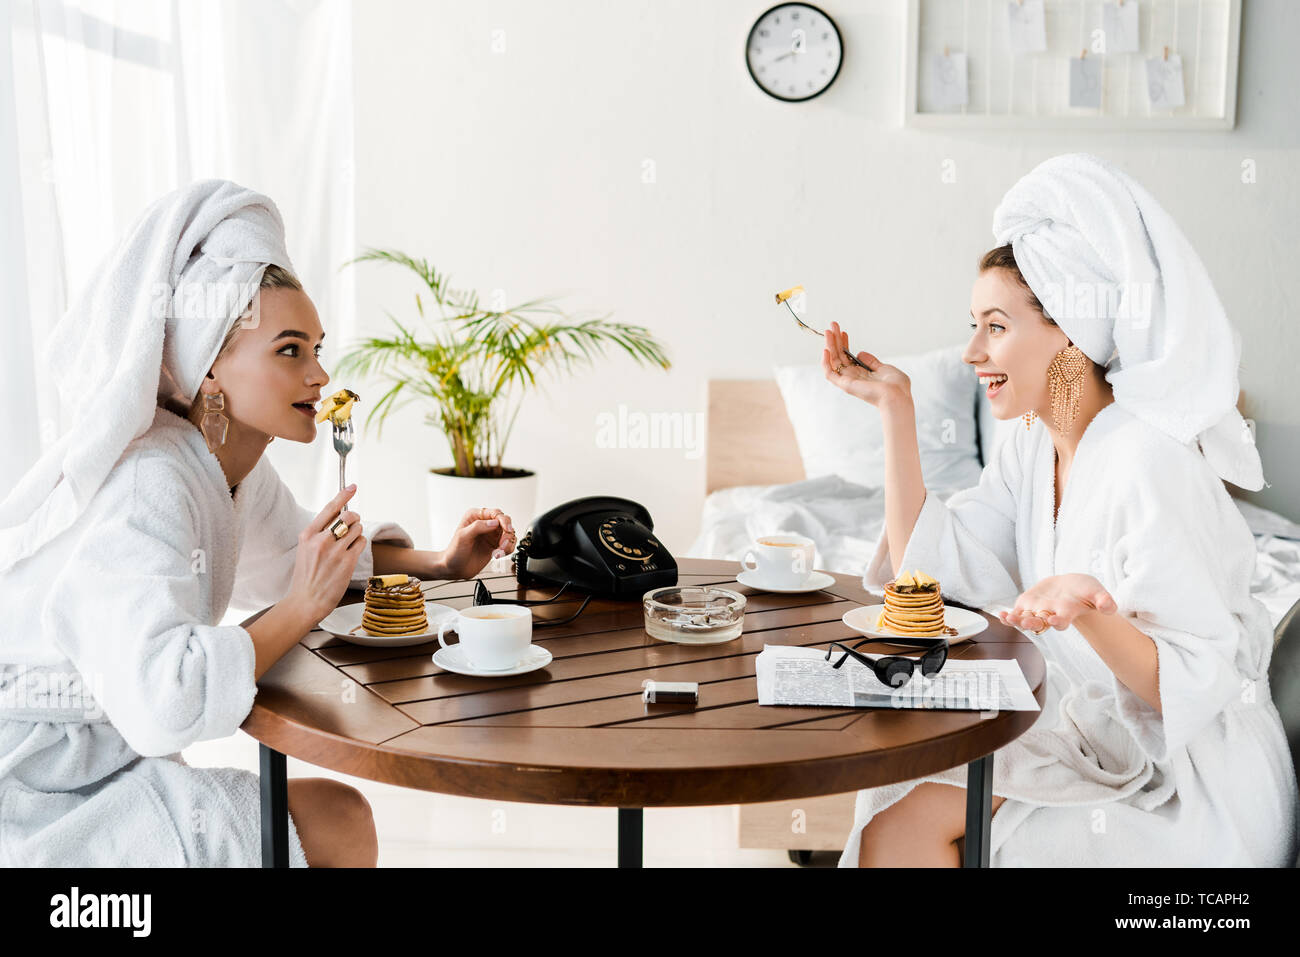 stylish happy women in bathrobes and jewelry with towels on heads talking during breakfast Stock Photo